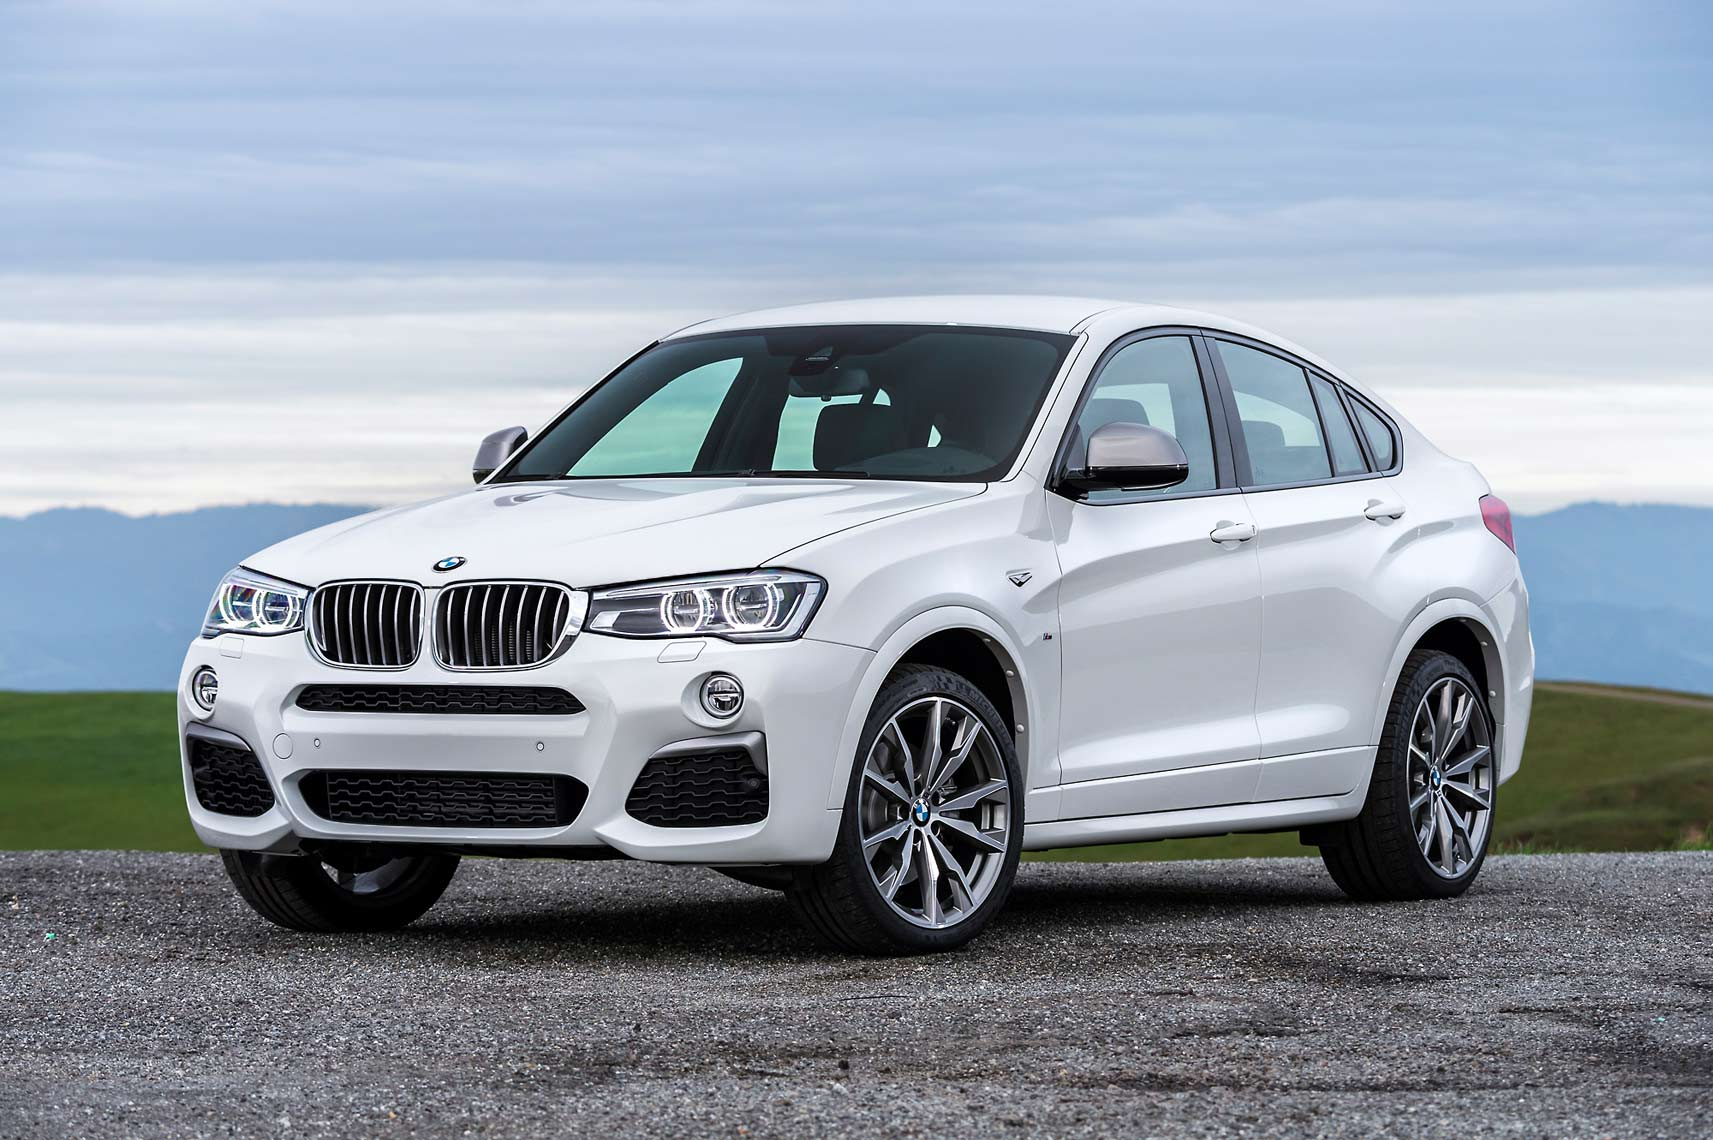 BMW_X4_M40i_011_low_res